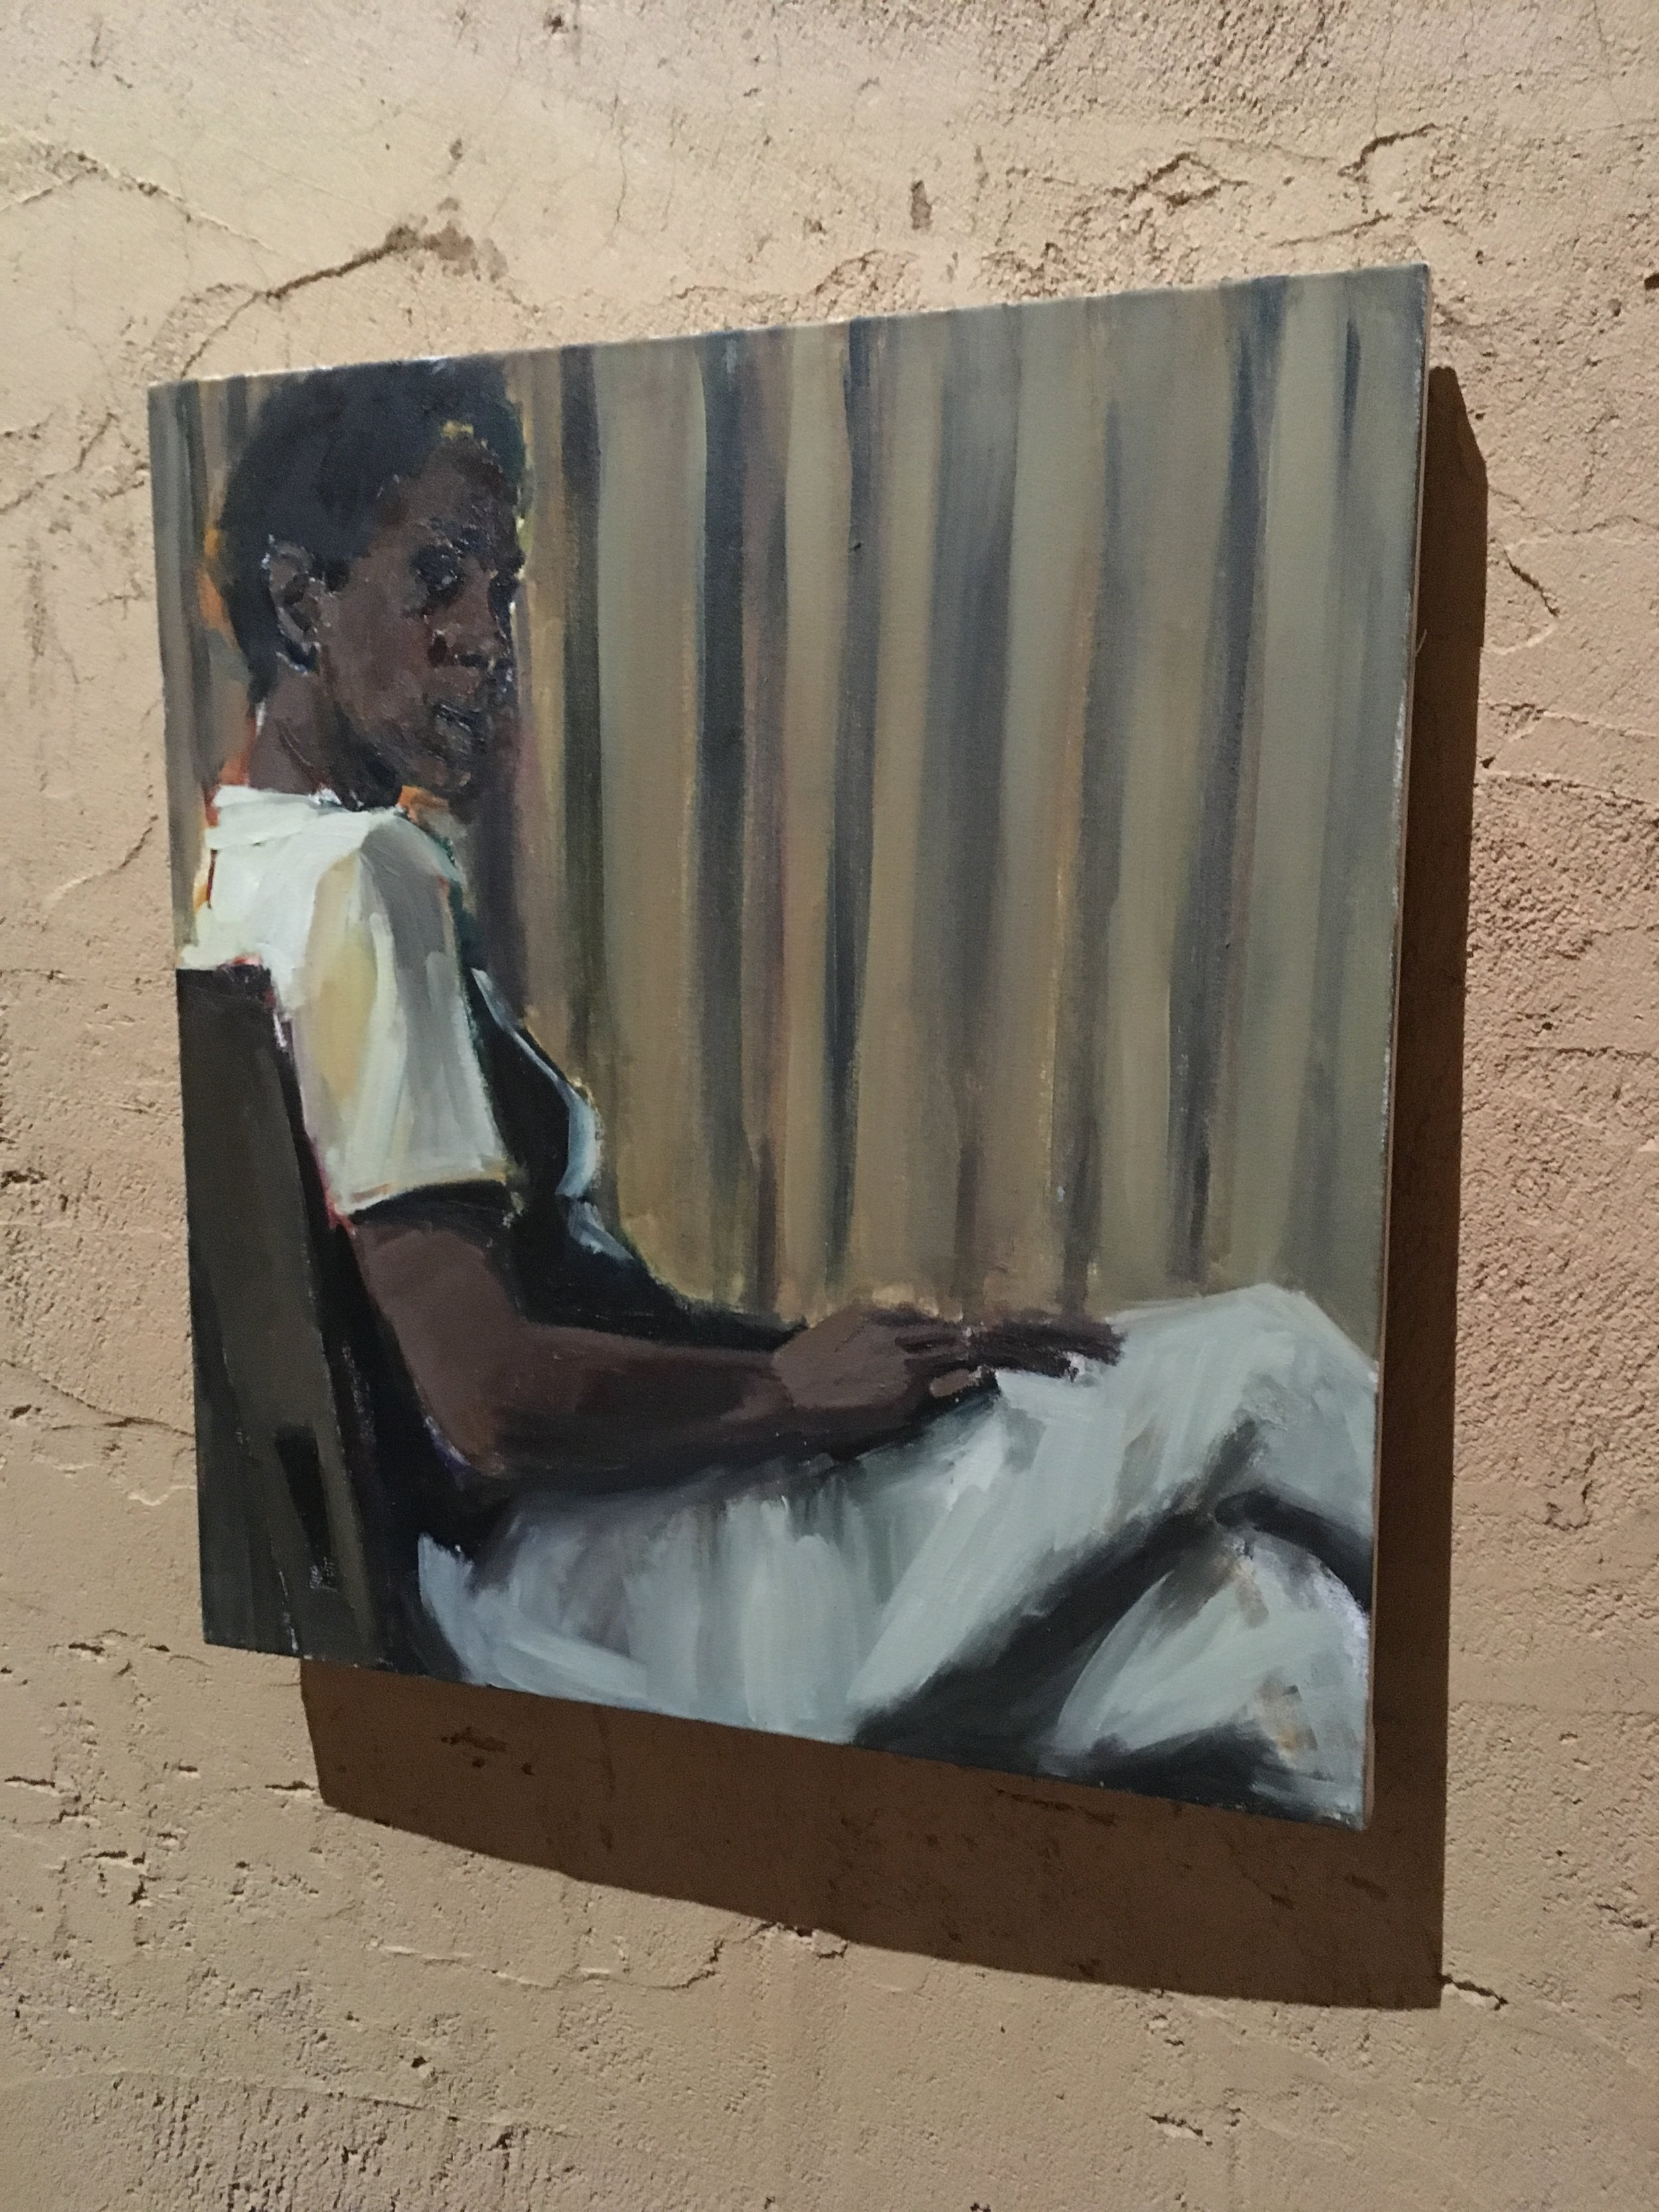 Lynette Yiadom-Boakye paintings at the Ghana Pavilion. She has a show at Tate Britain opening May 2020.  Details here